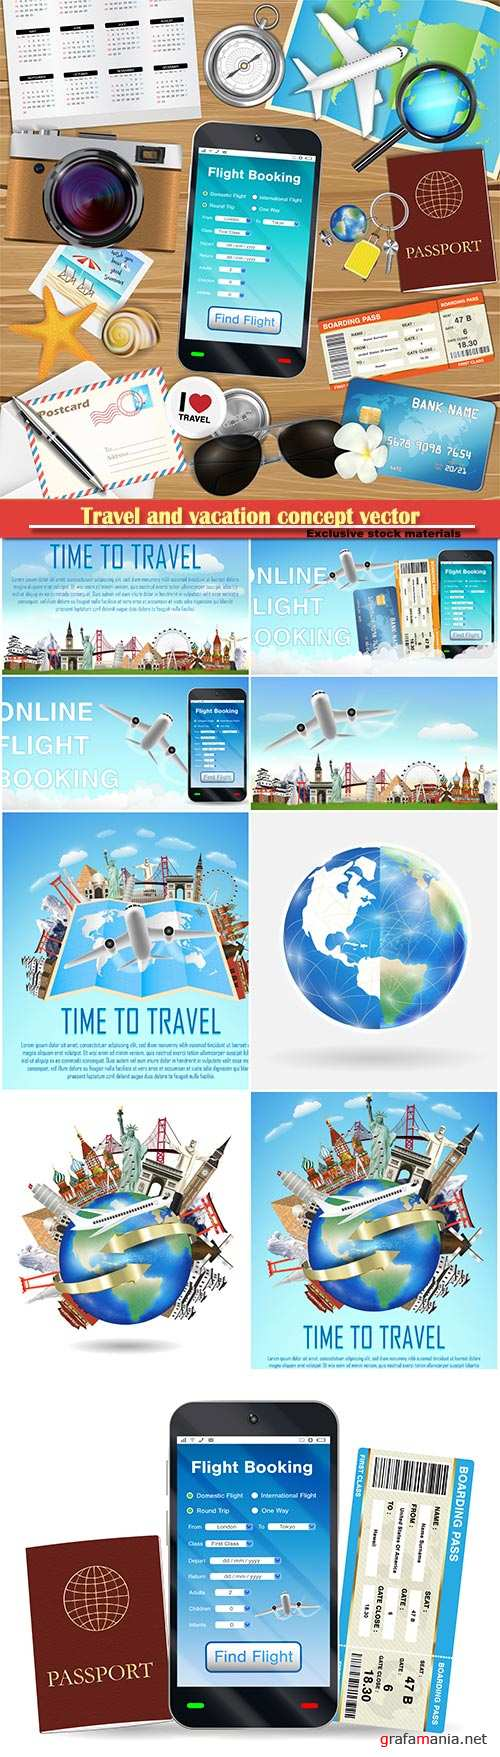 Travel and vacation concept vector illustration